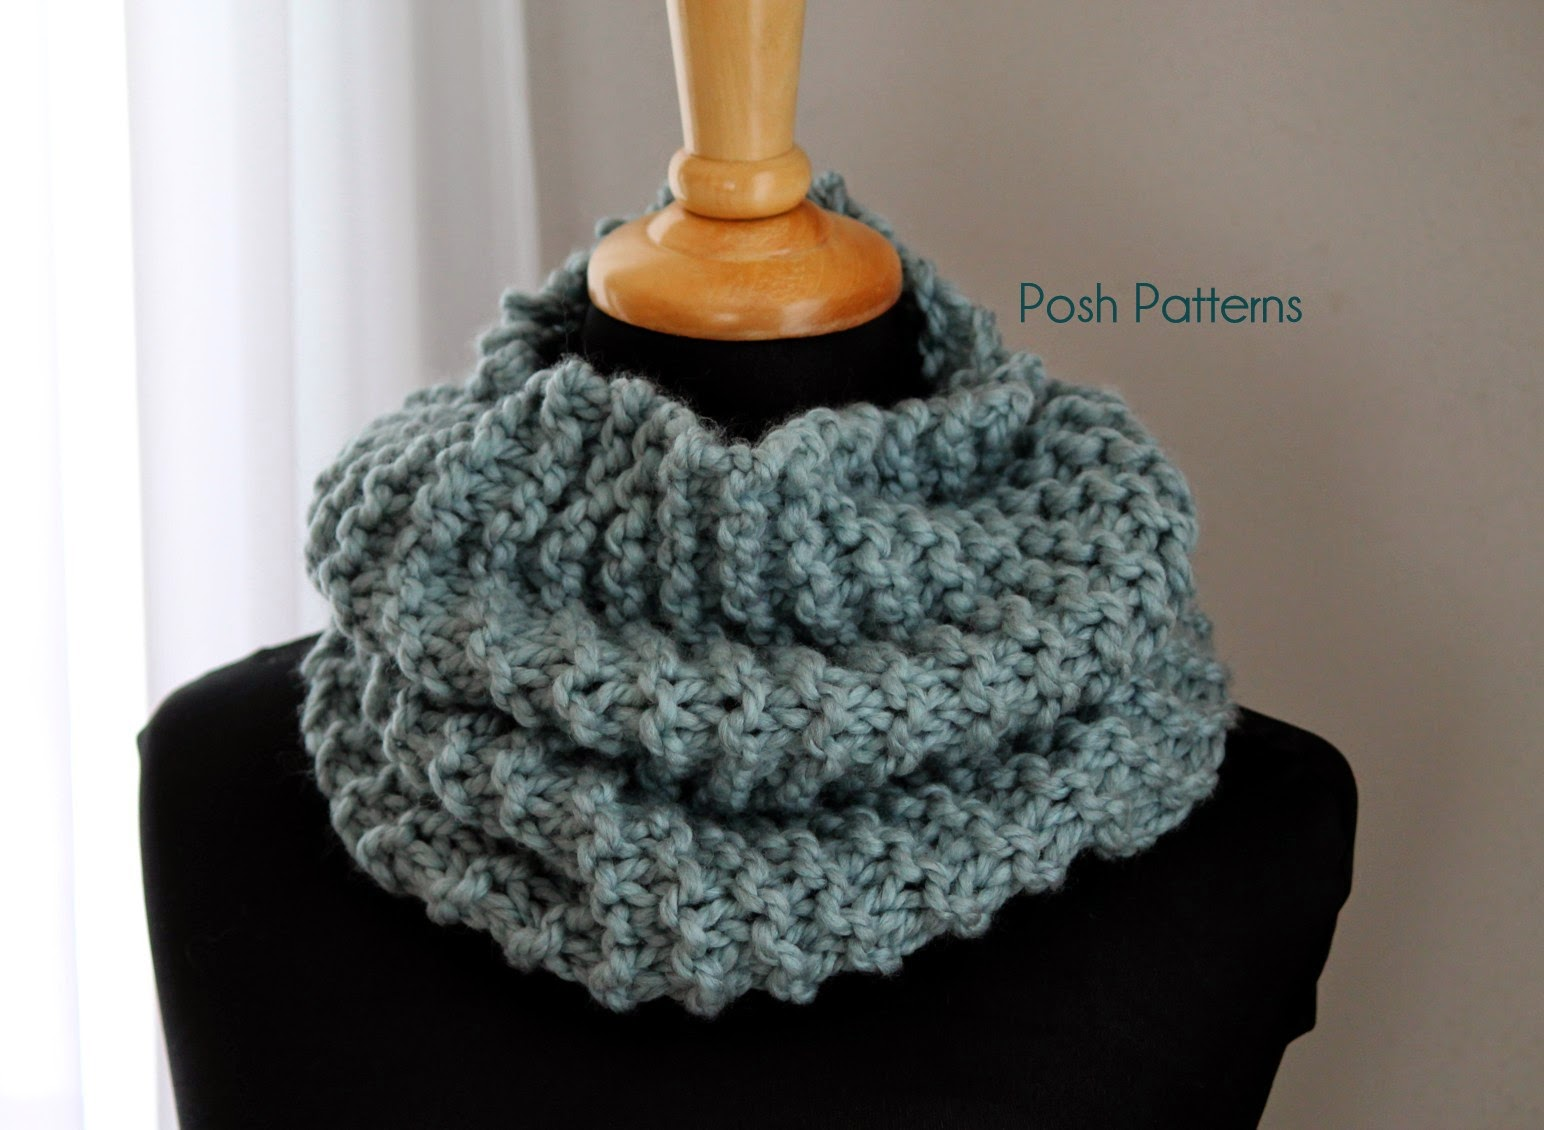 Free Cowl Knitting Patterns For Beginners : Posh Patterns Easy Crochet Patterns and Knitting Patterns ...